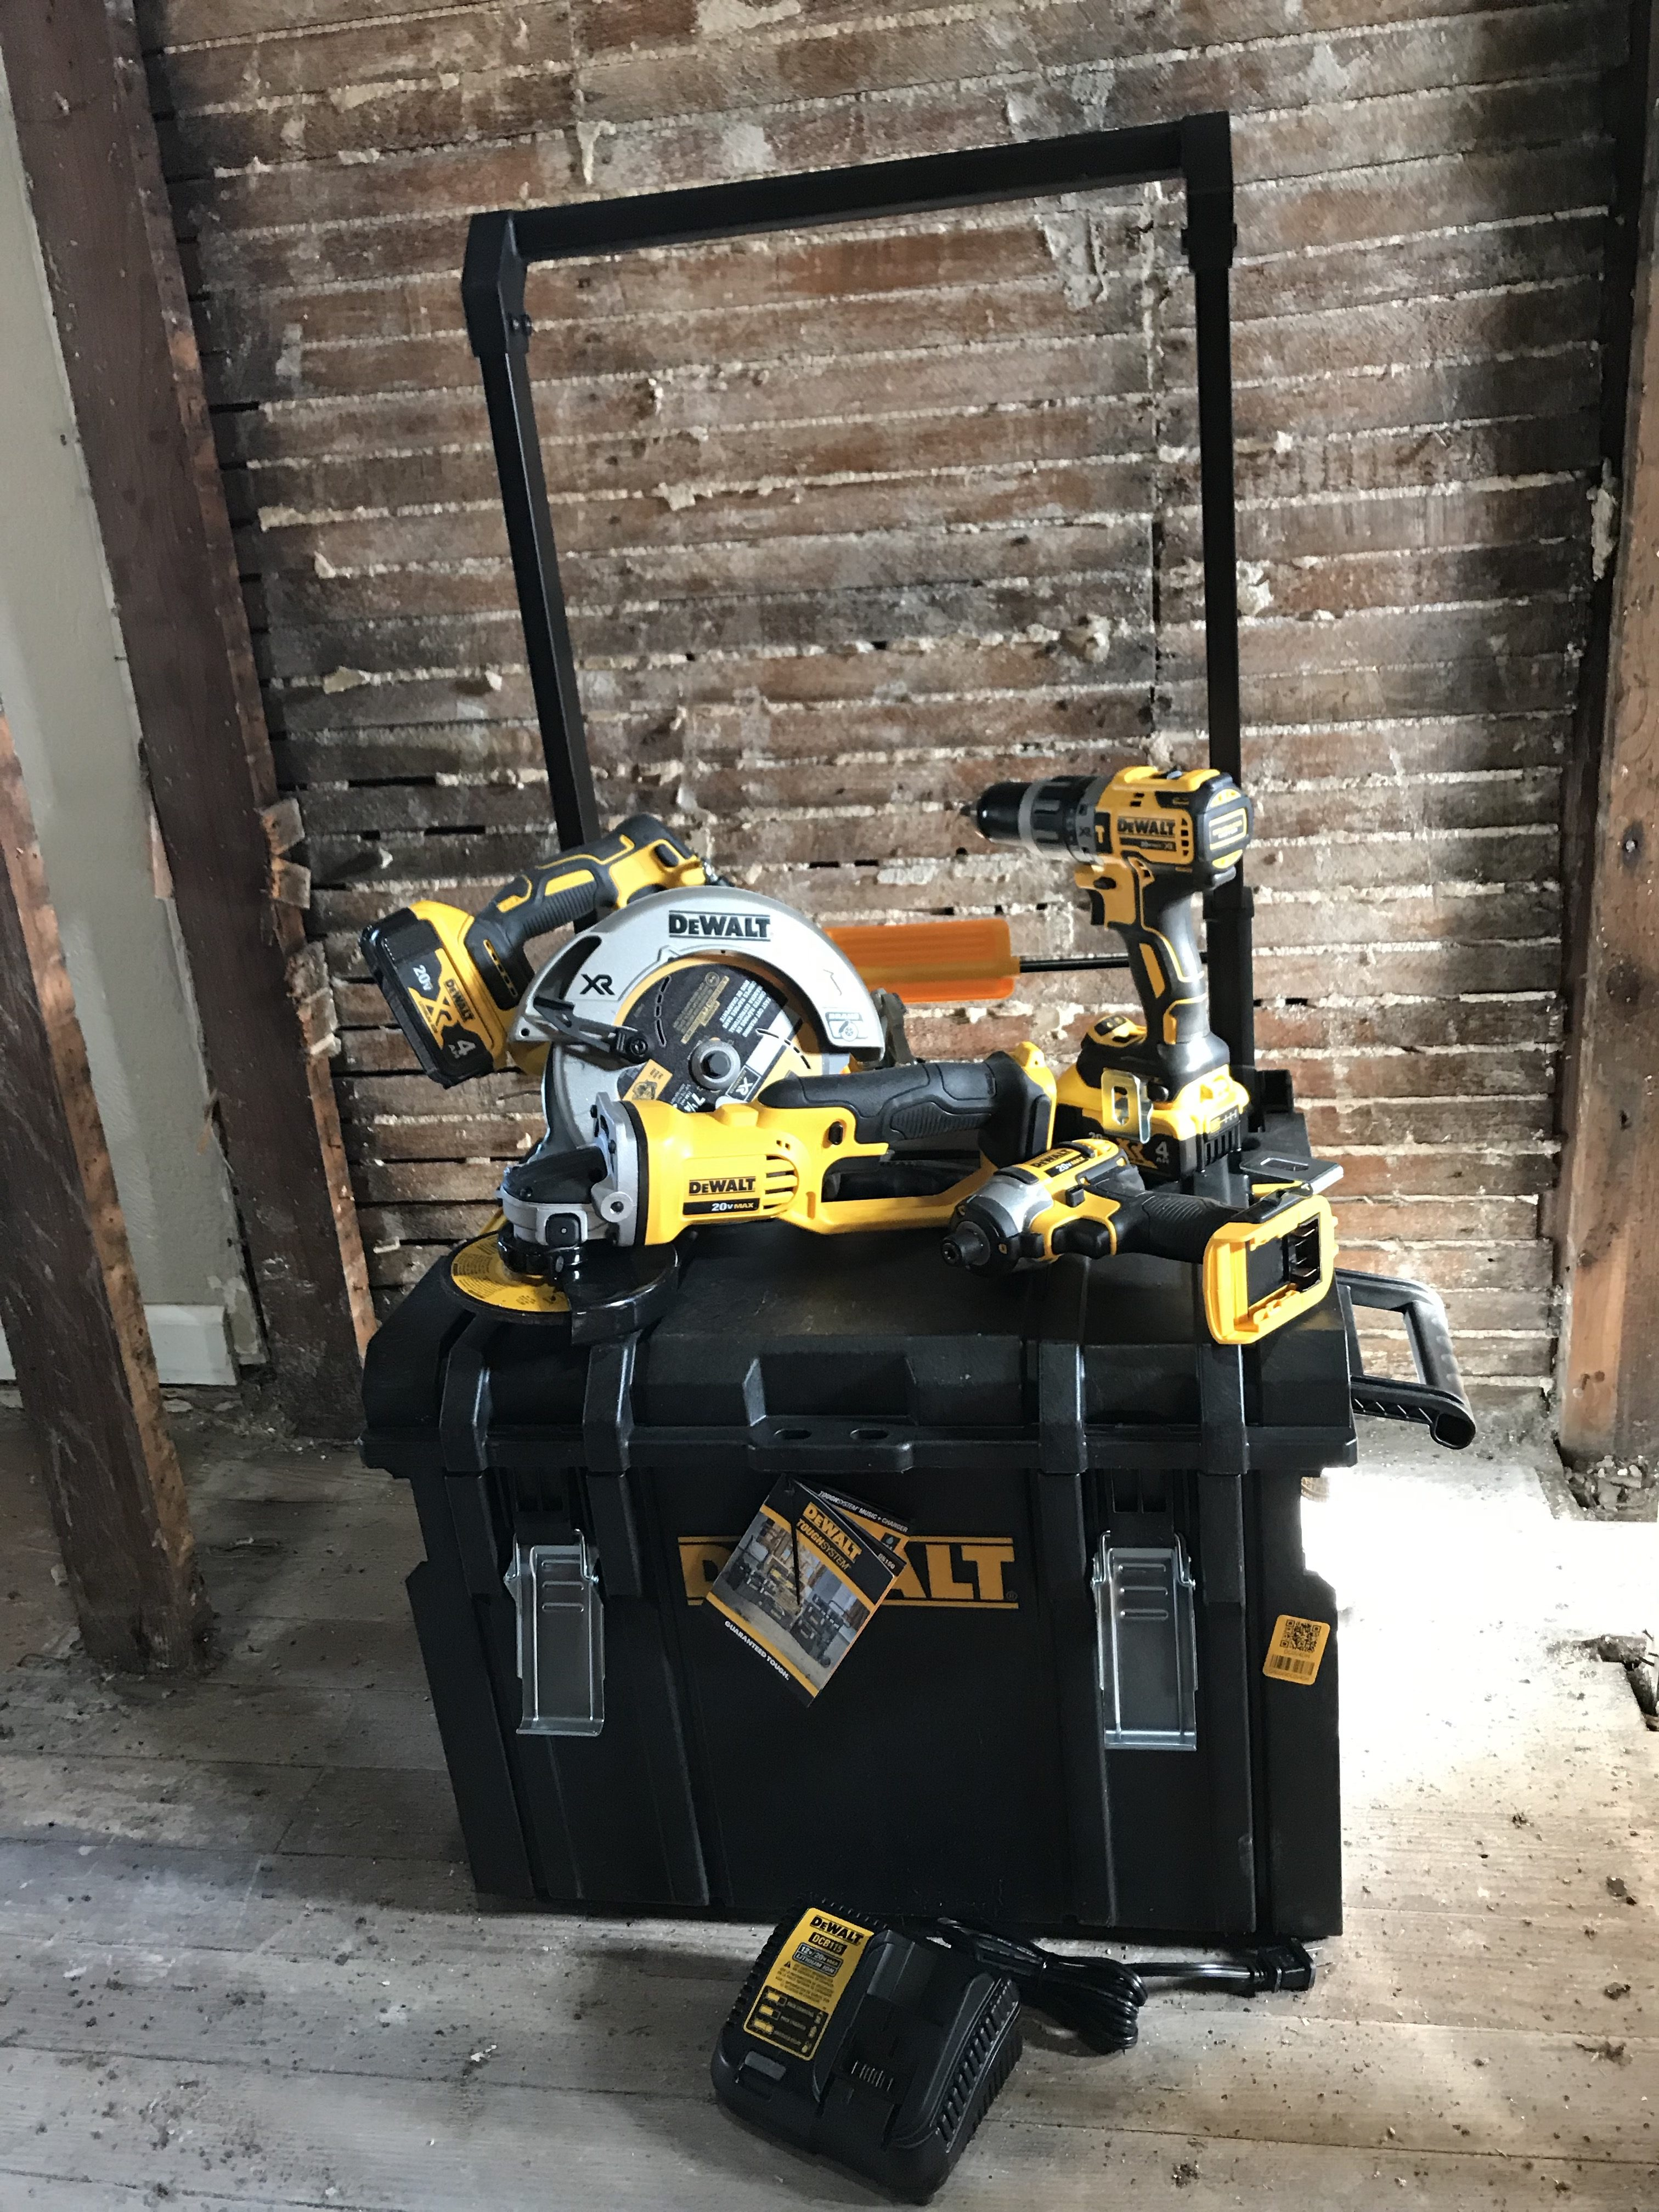 Dewalt Max Cordless Combo Kit in Tough System – #THDProSpective